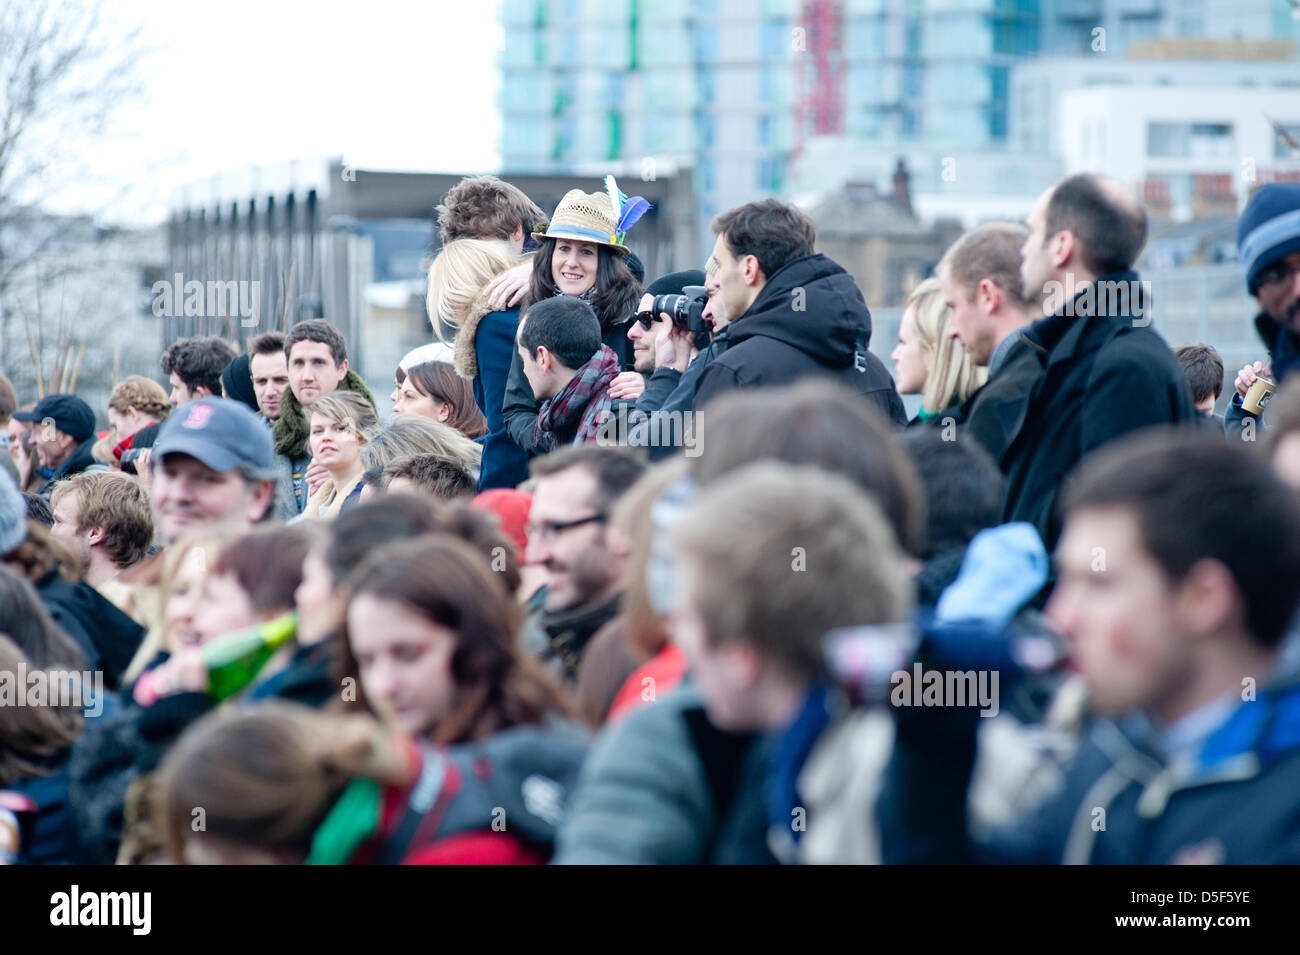 London, UK - 31 March 2013: hundreds of people gather to see the 5th Annual Oxford and Cambridge Goat Race that - Stock Image